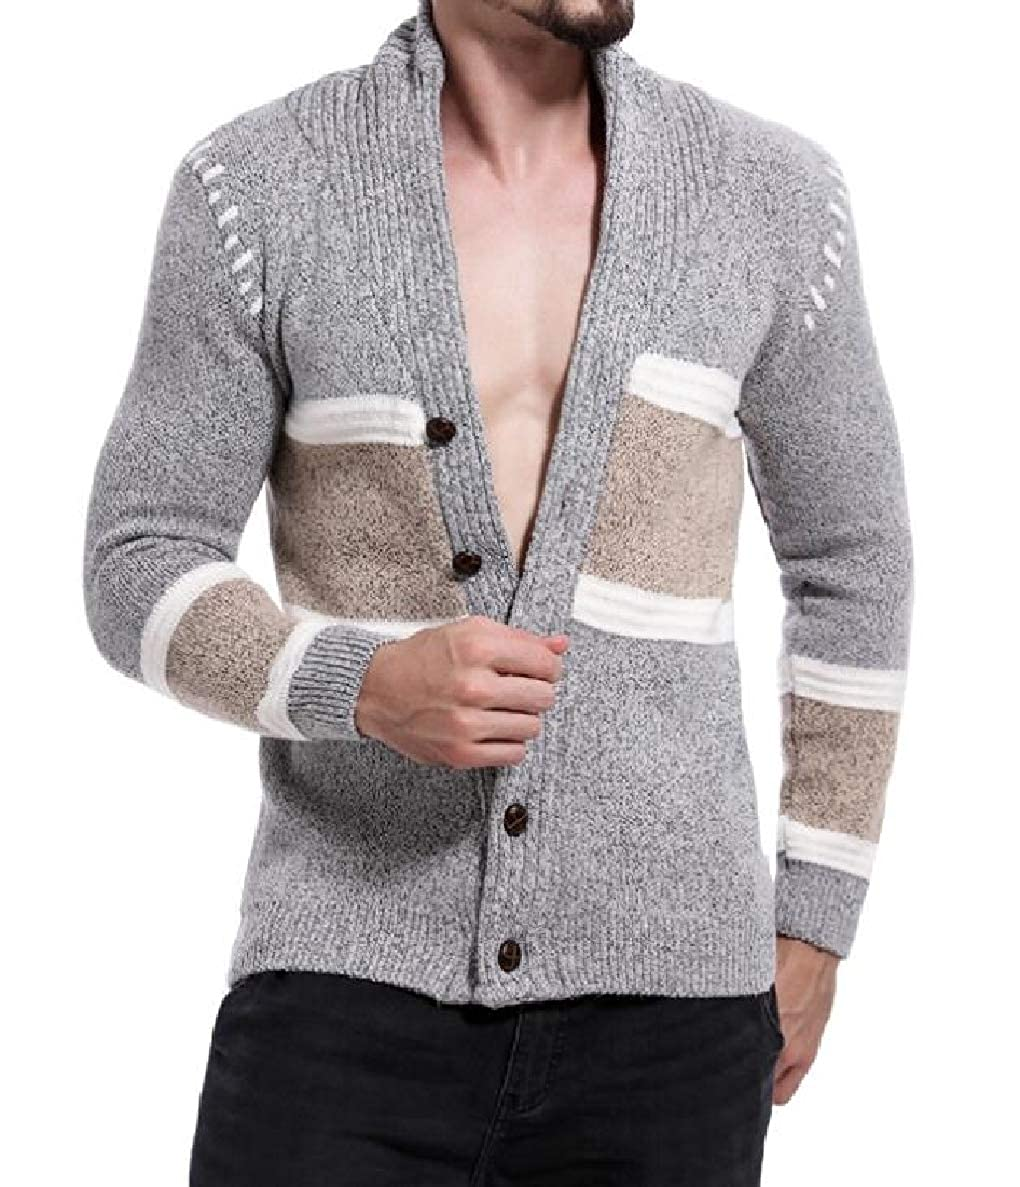 Winwinus Men Assorted Colors V Neck Autumn Winter Cardigan Knit Long-Sleeve Sweaters